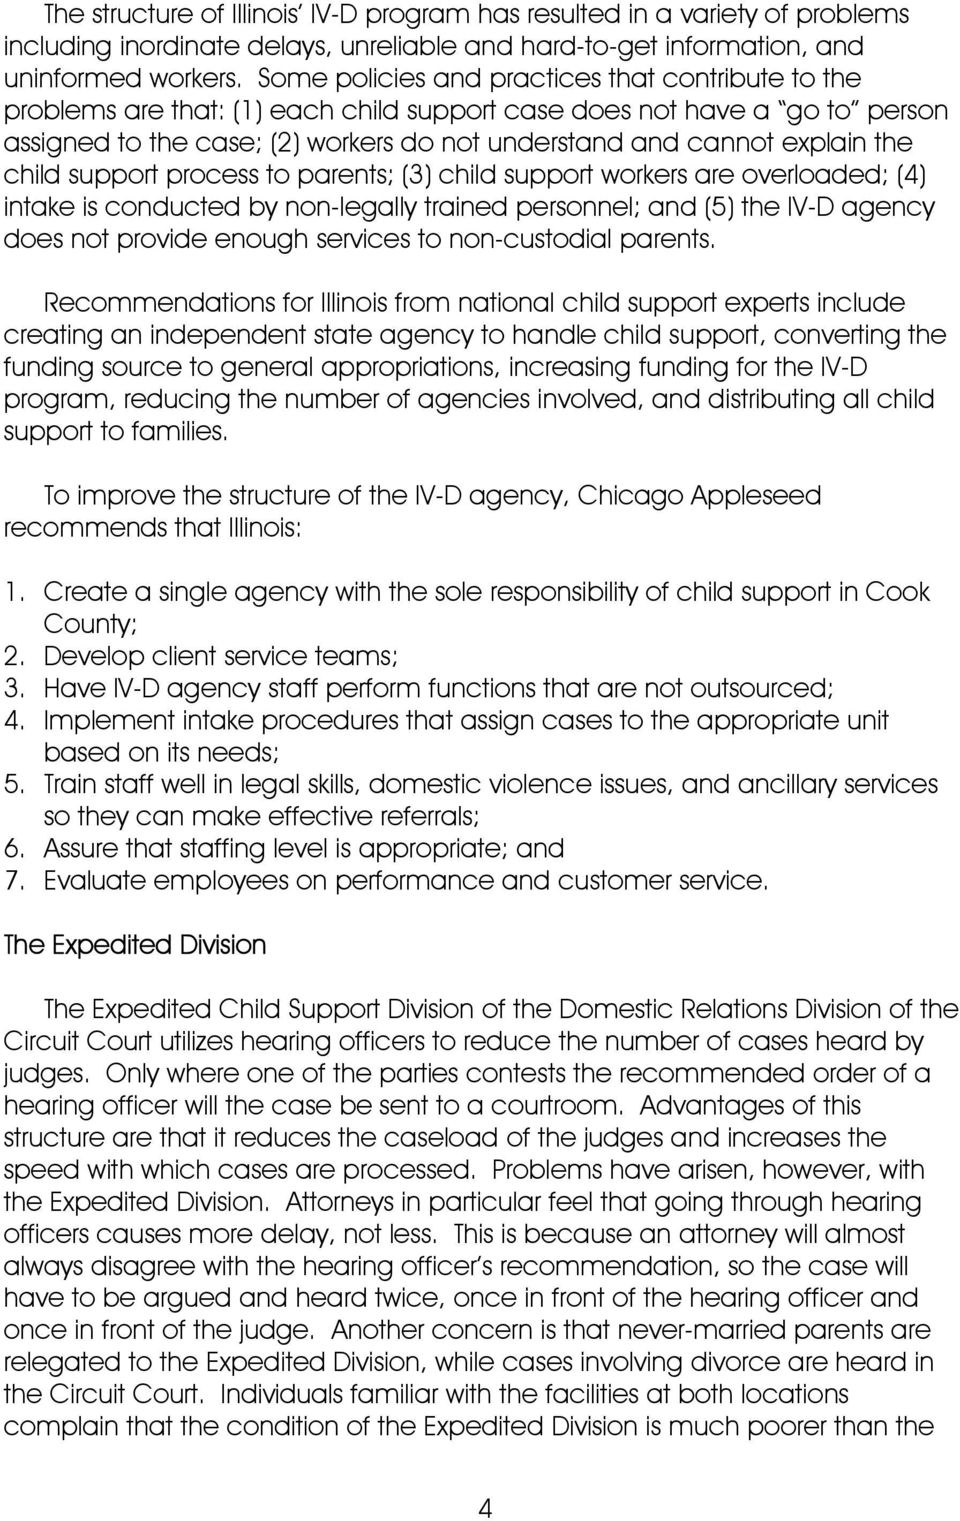 the child support process to parents; (3) child support workers are overloaded; (4) intake is conducted by non-legally trained personnel; and (5) the IV-D agency does not provide enough services to